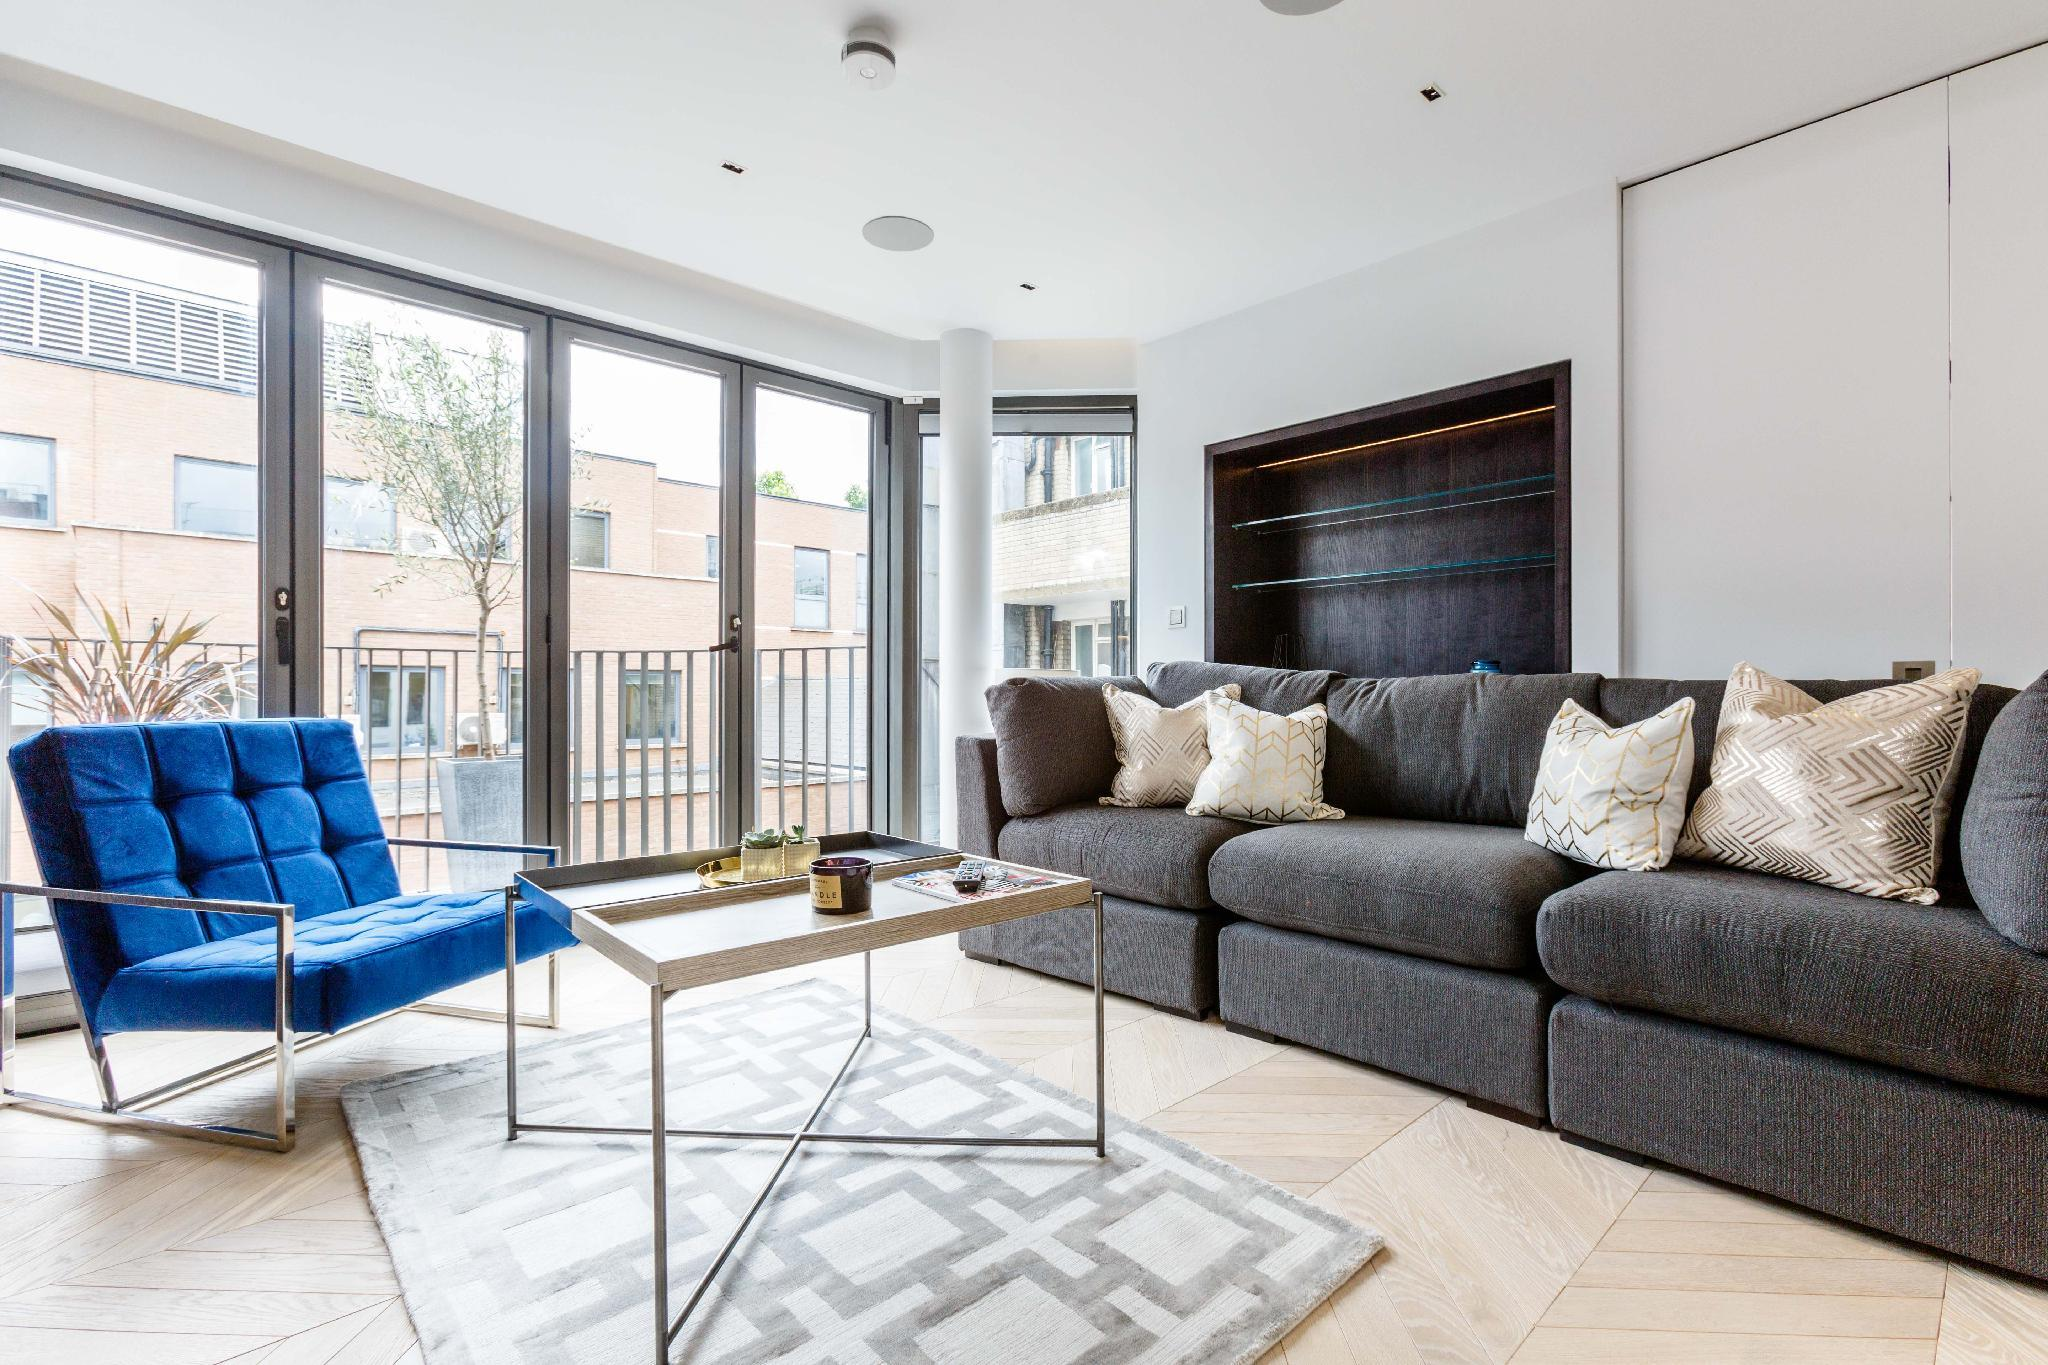 Goodge Street III - Amazing apartment in FITZROVIA